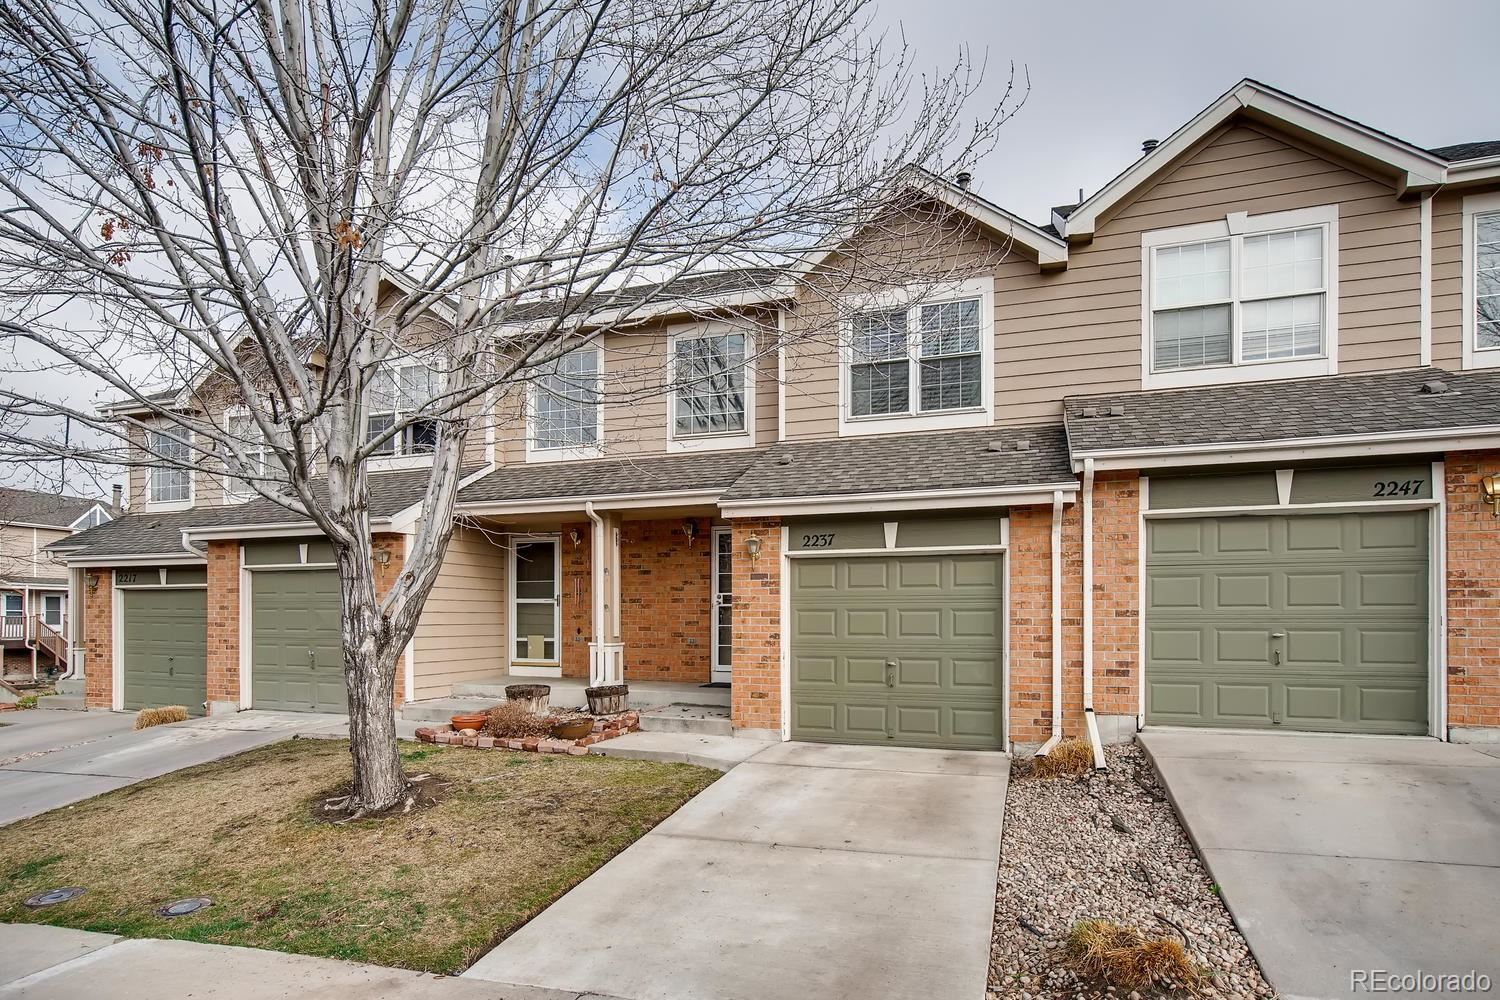 2237 E 103rd Court, Thornton, CO 80229 - #: 5773837